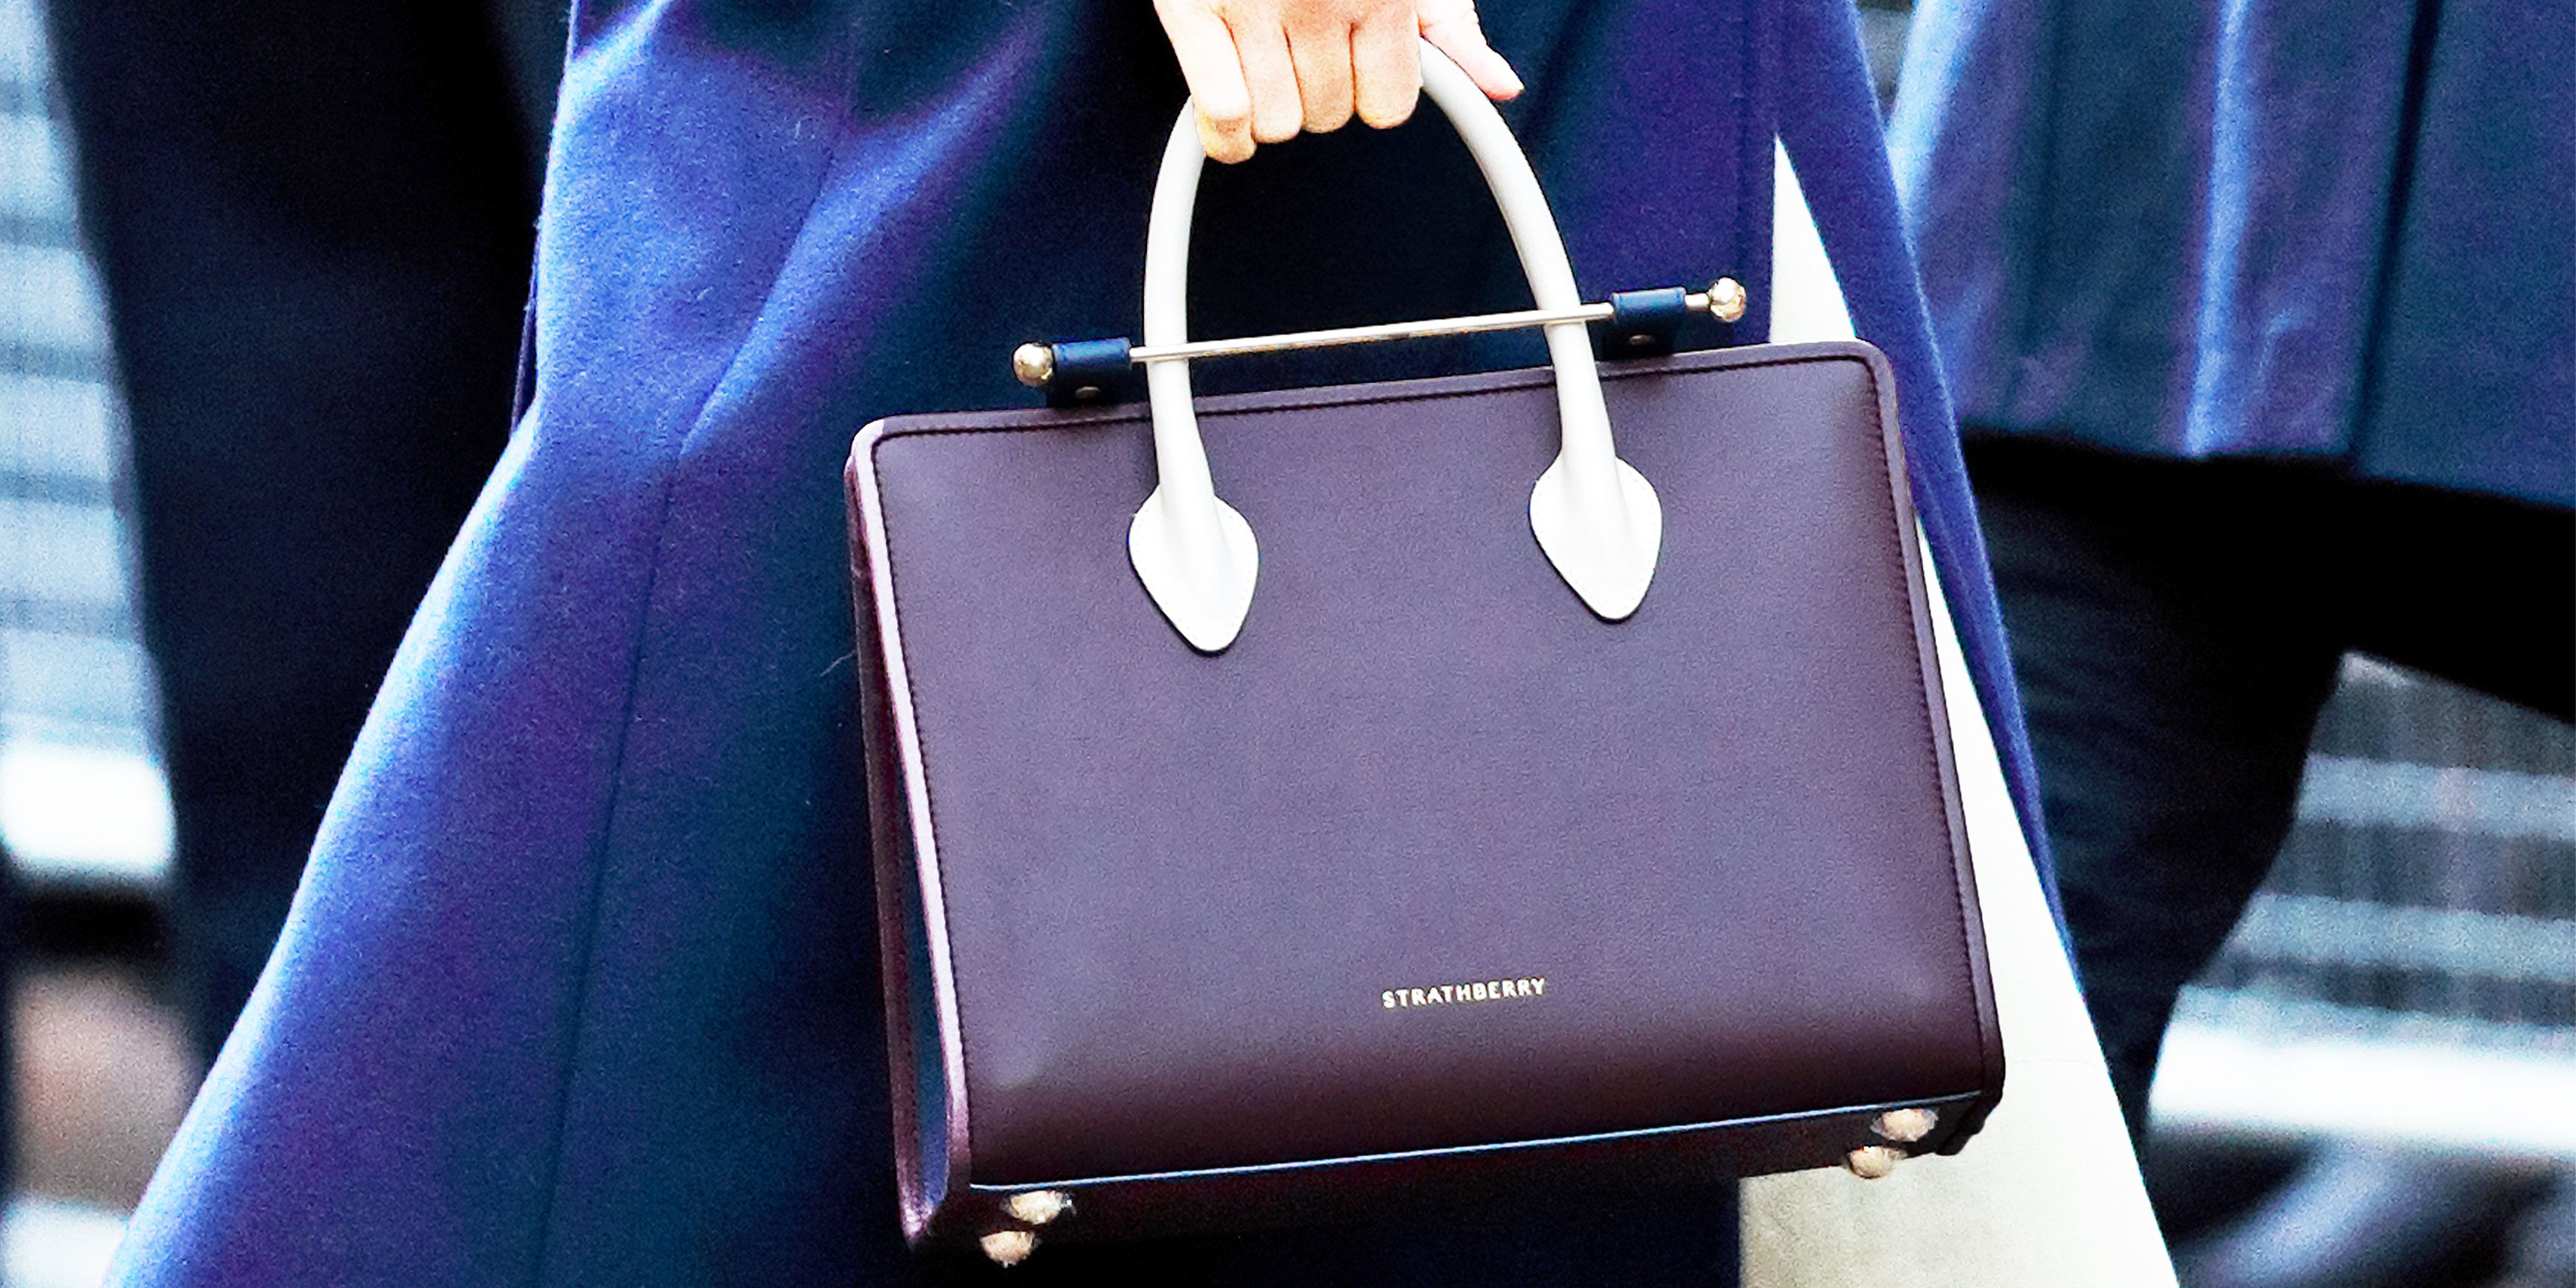 Meet Strathberry, the Handbag Brand Meghan Markle Just Put on the Map